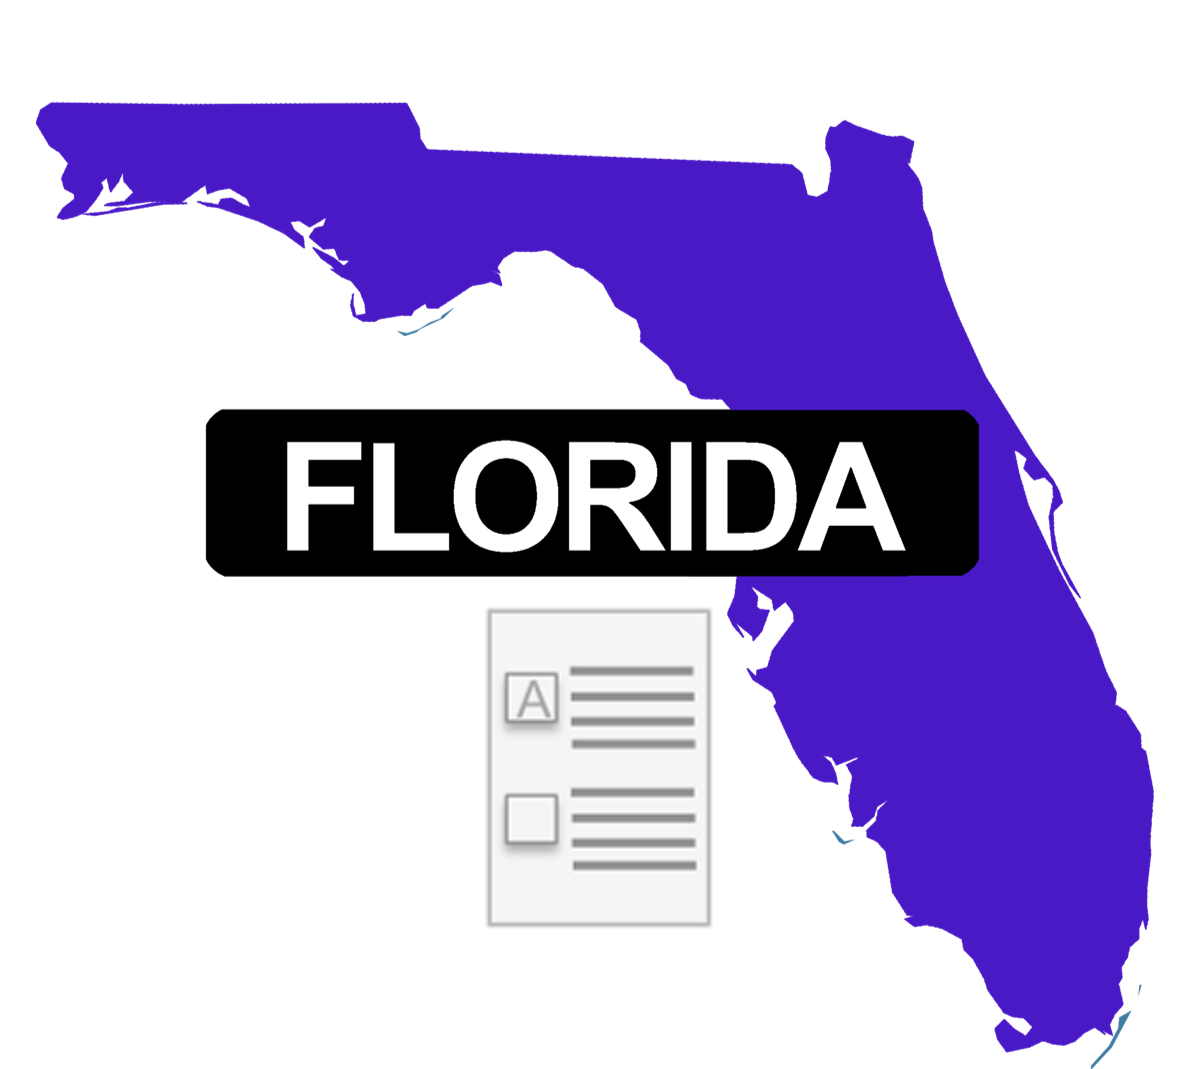 Florida Electrical Contractor Practice Questions